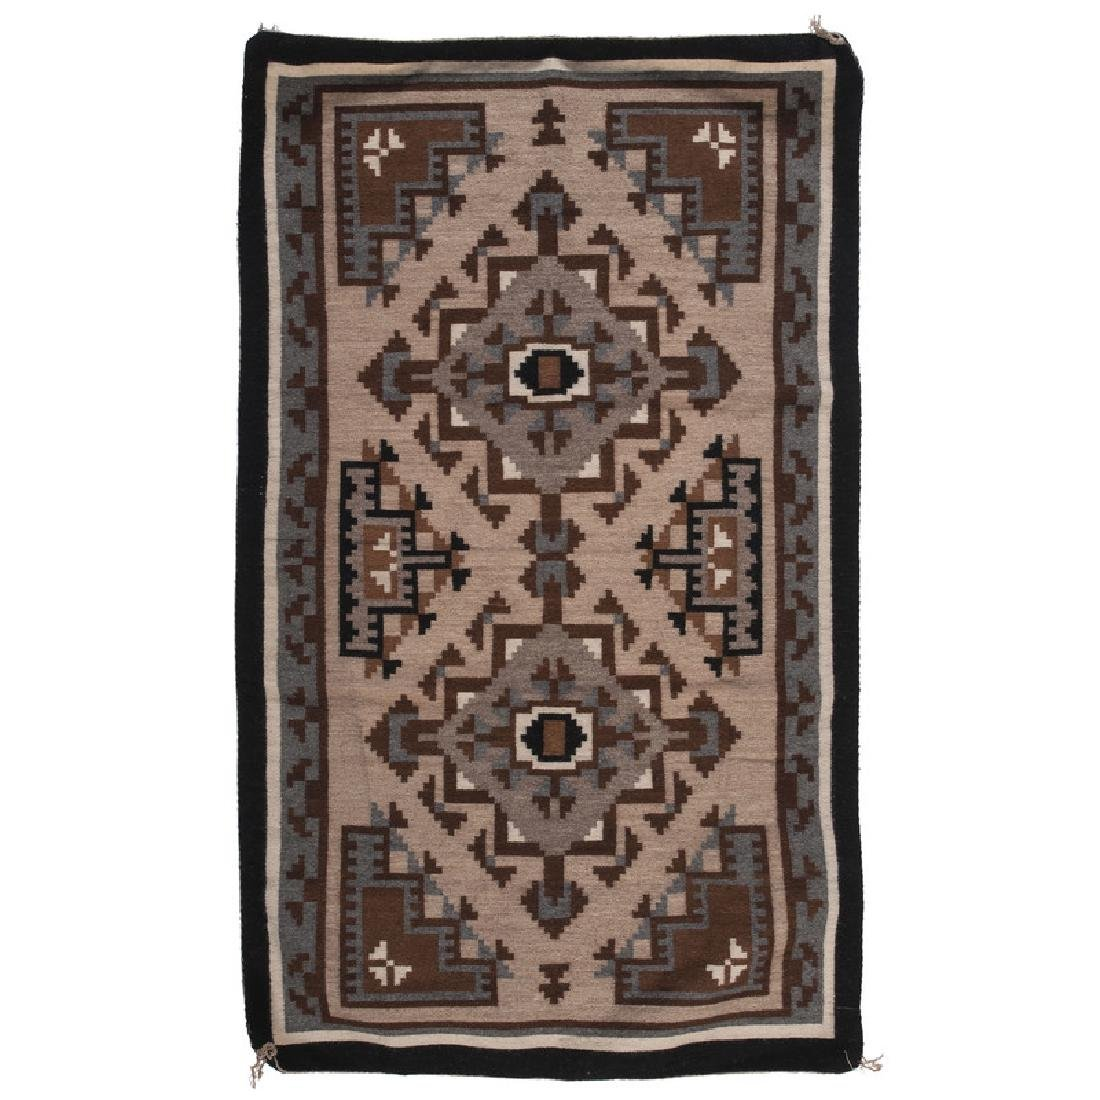 Navajo Two Grey Hills Weaving / Rug, From the